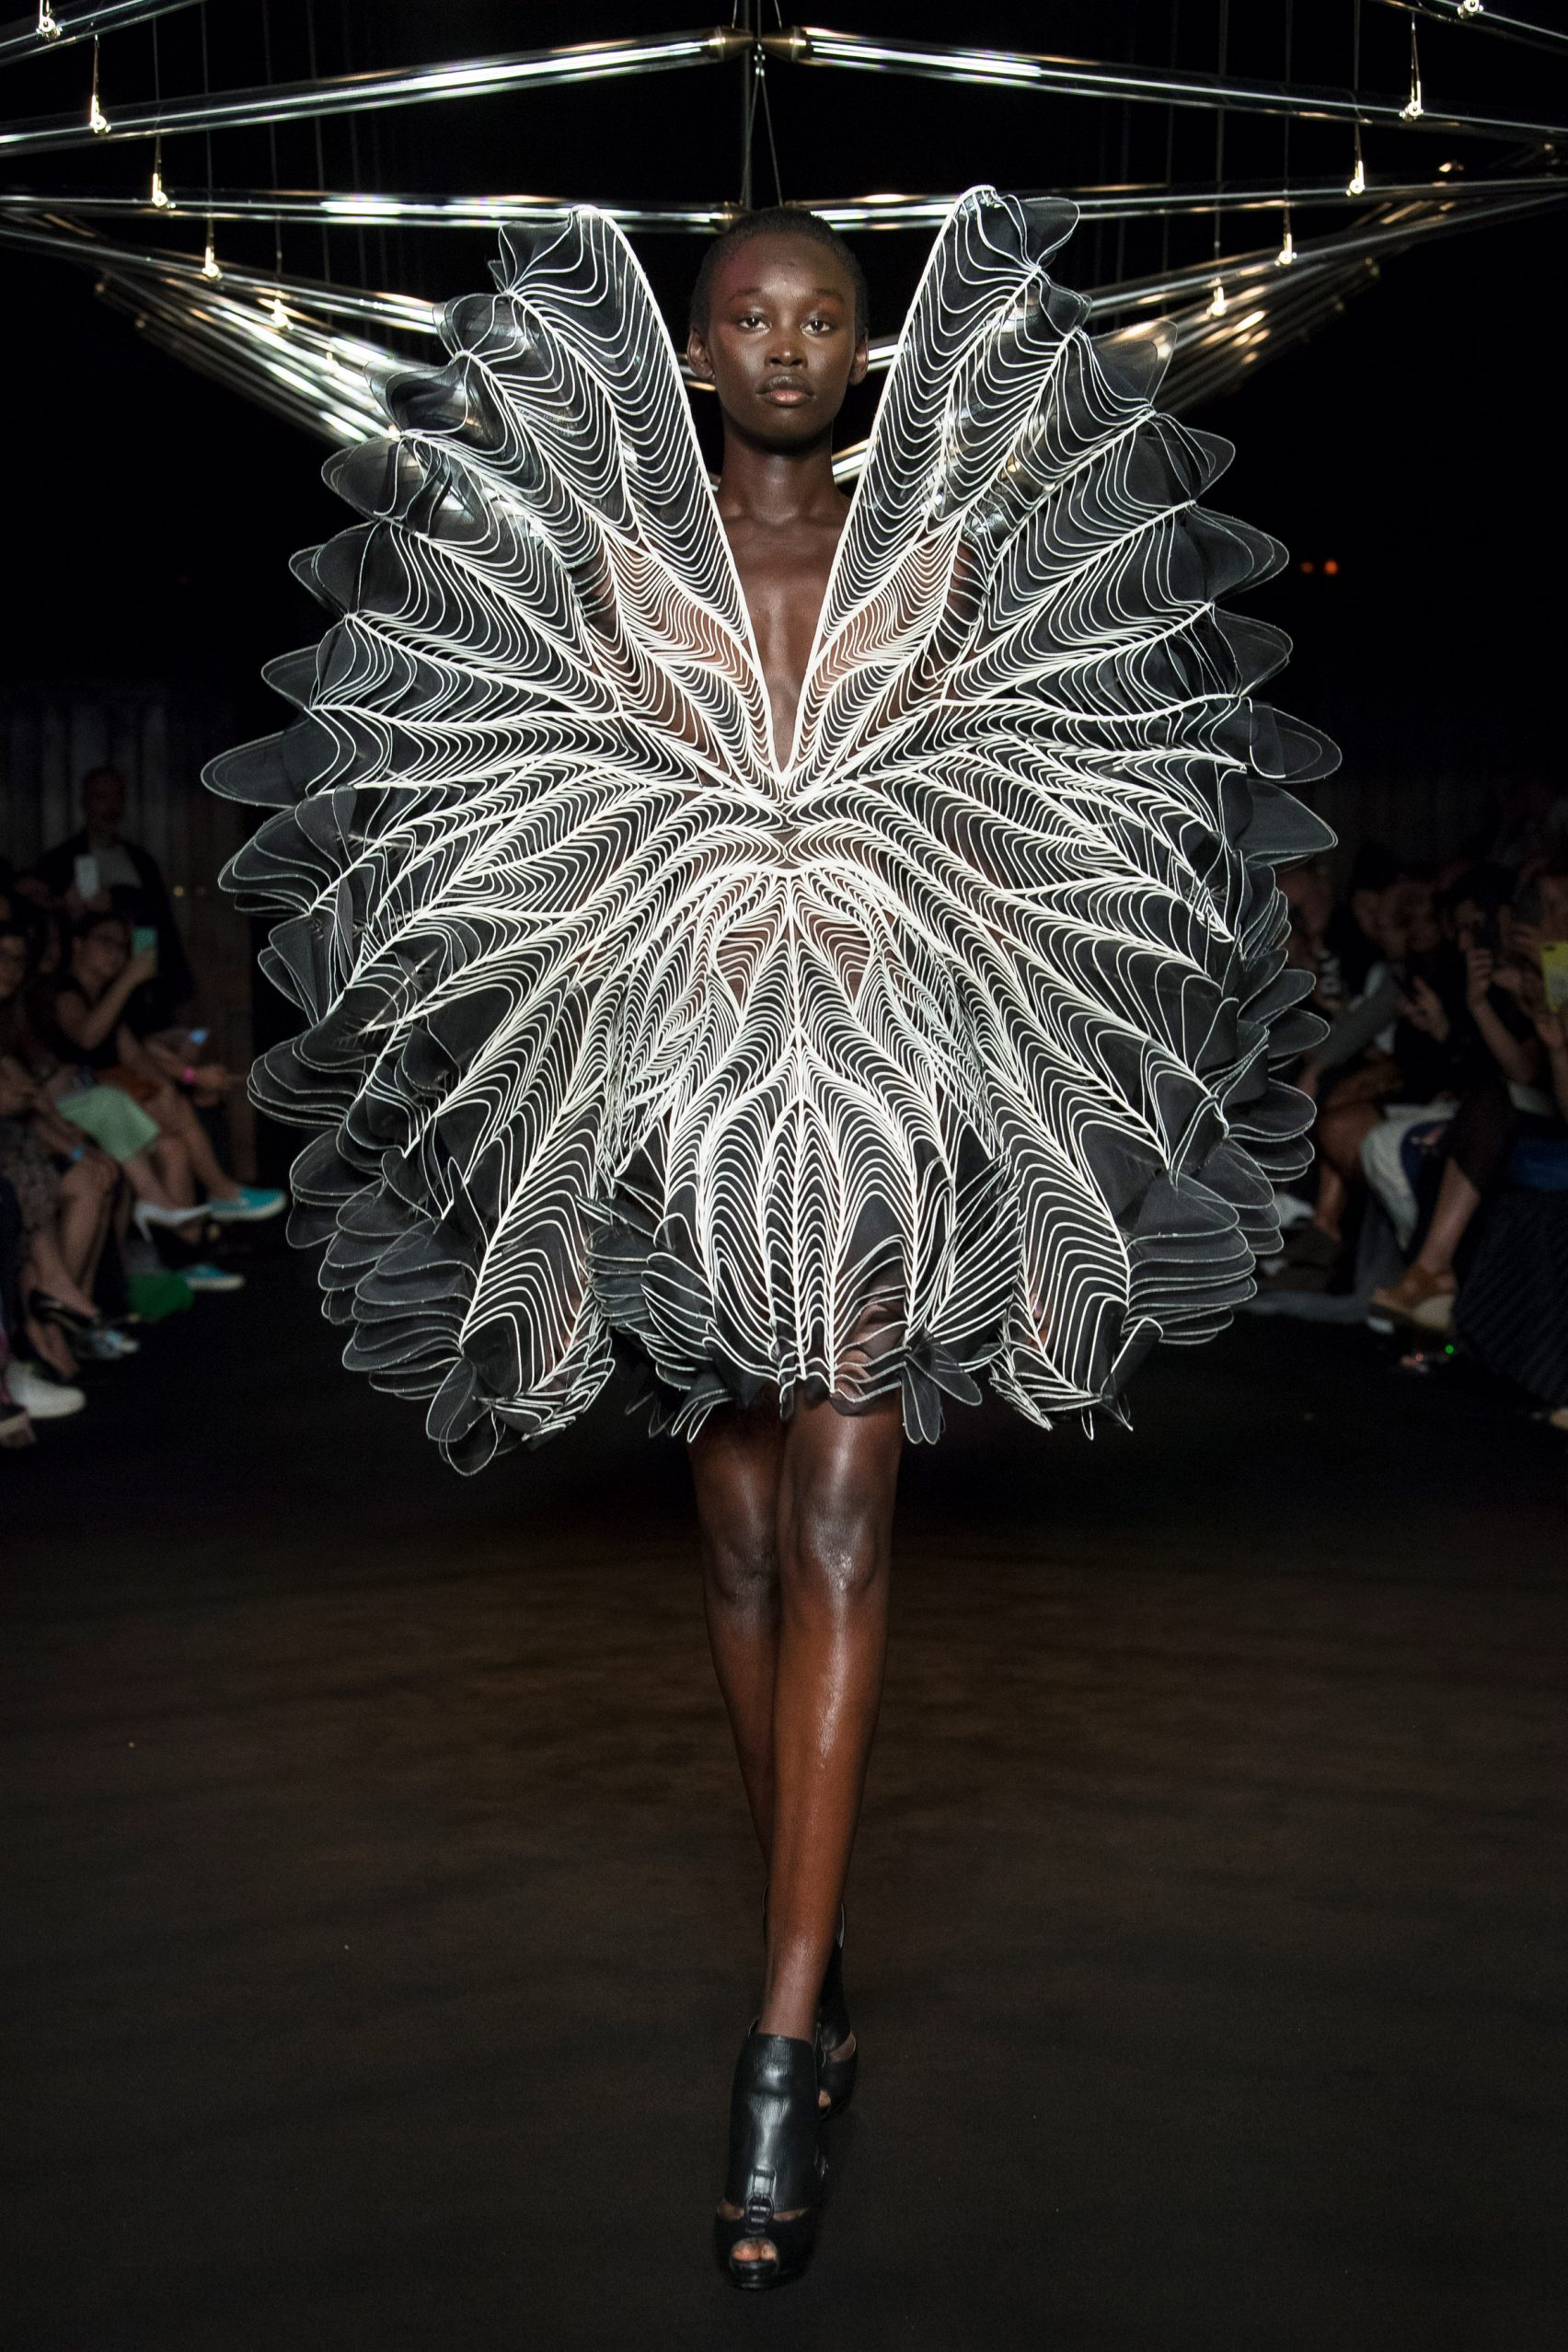 studio-drift-iris-van-herpen-fashion-show-design_dezeen_2364_col_19-1704x2556